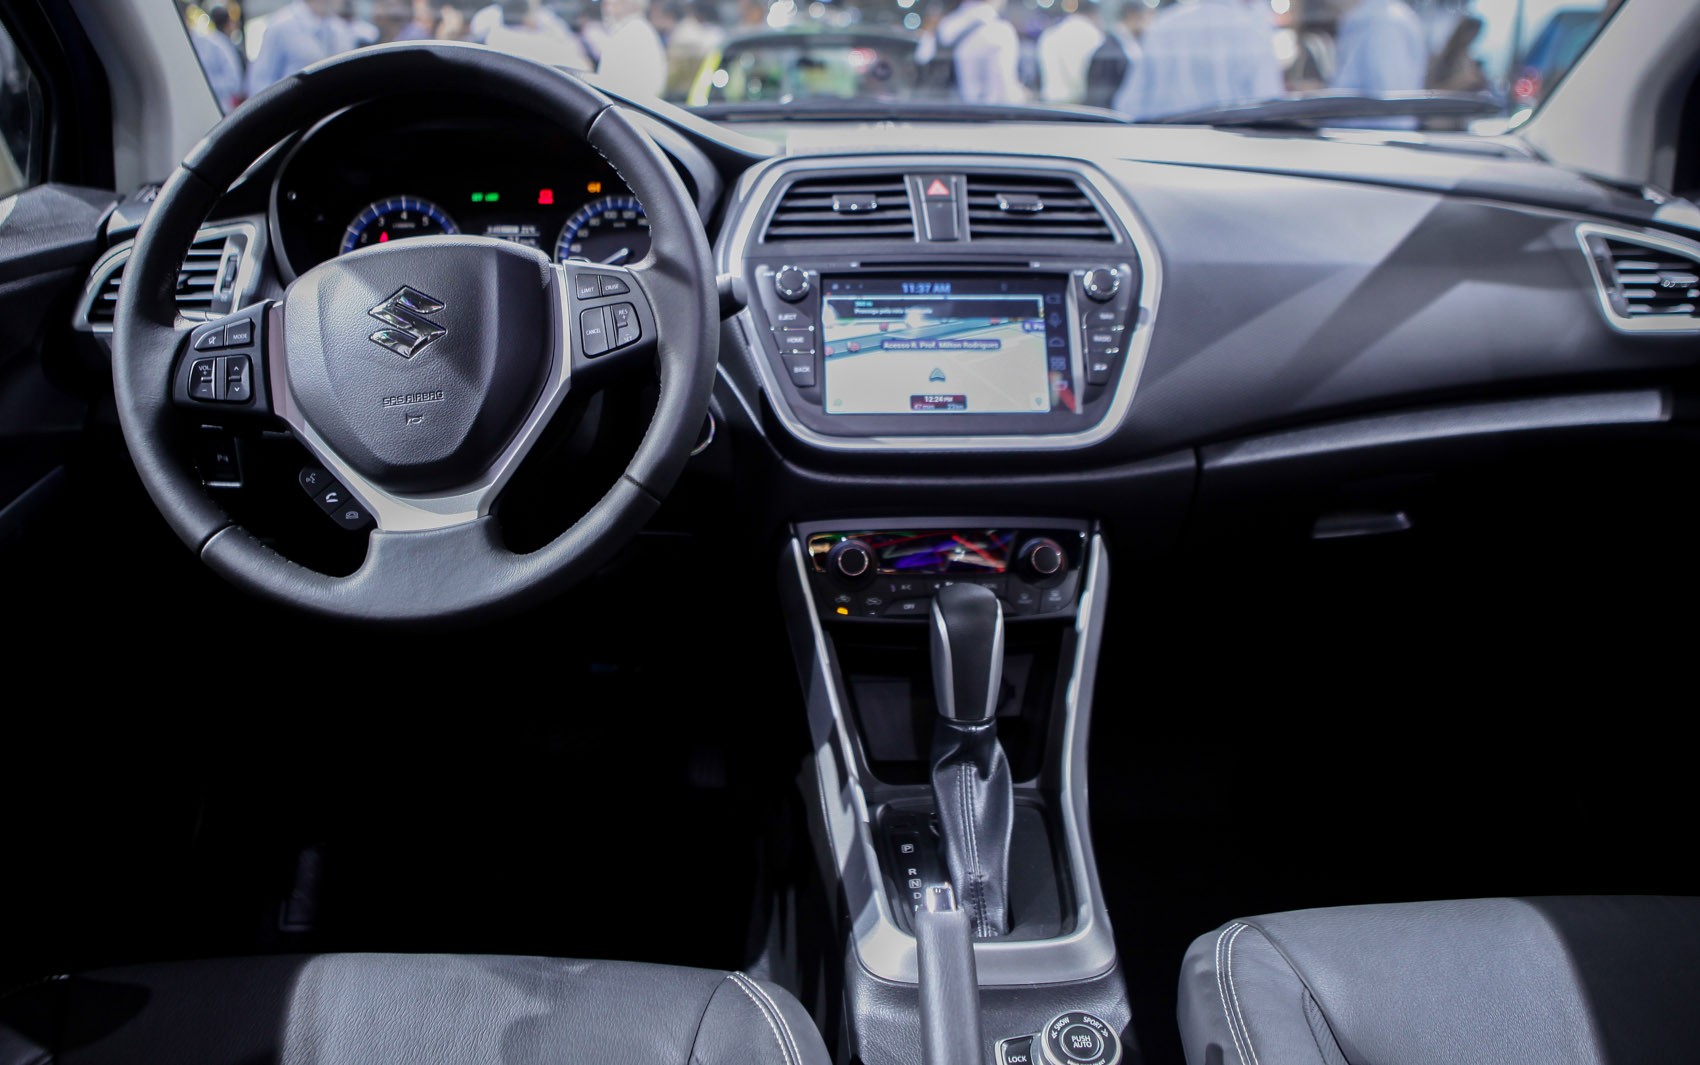 sx4 s-cross maruti interior